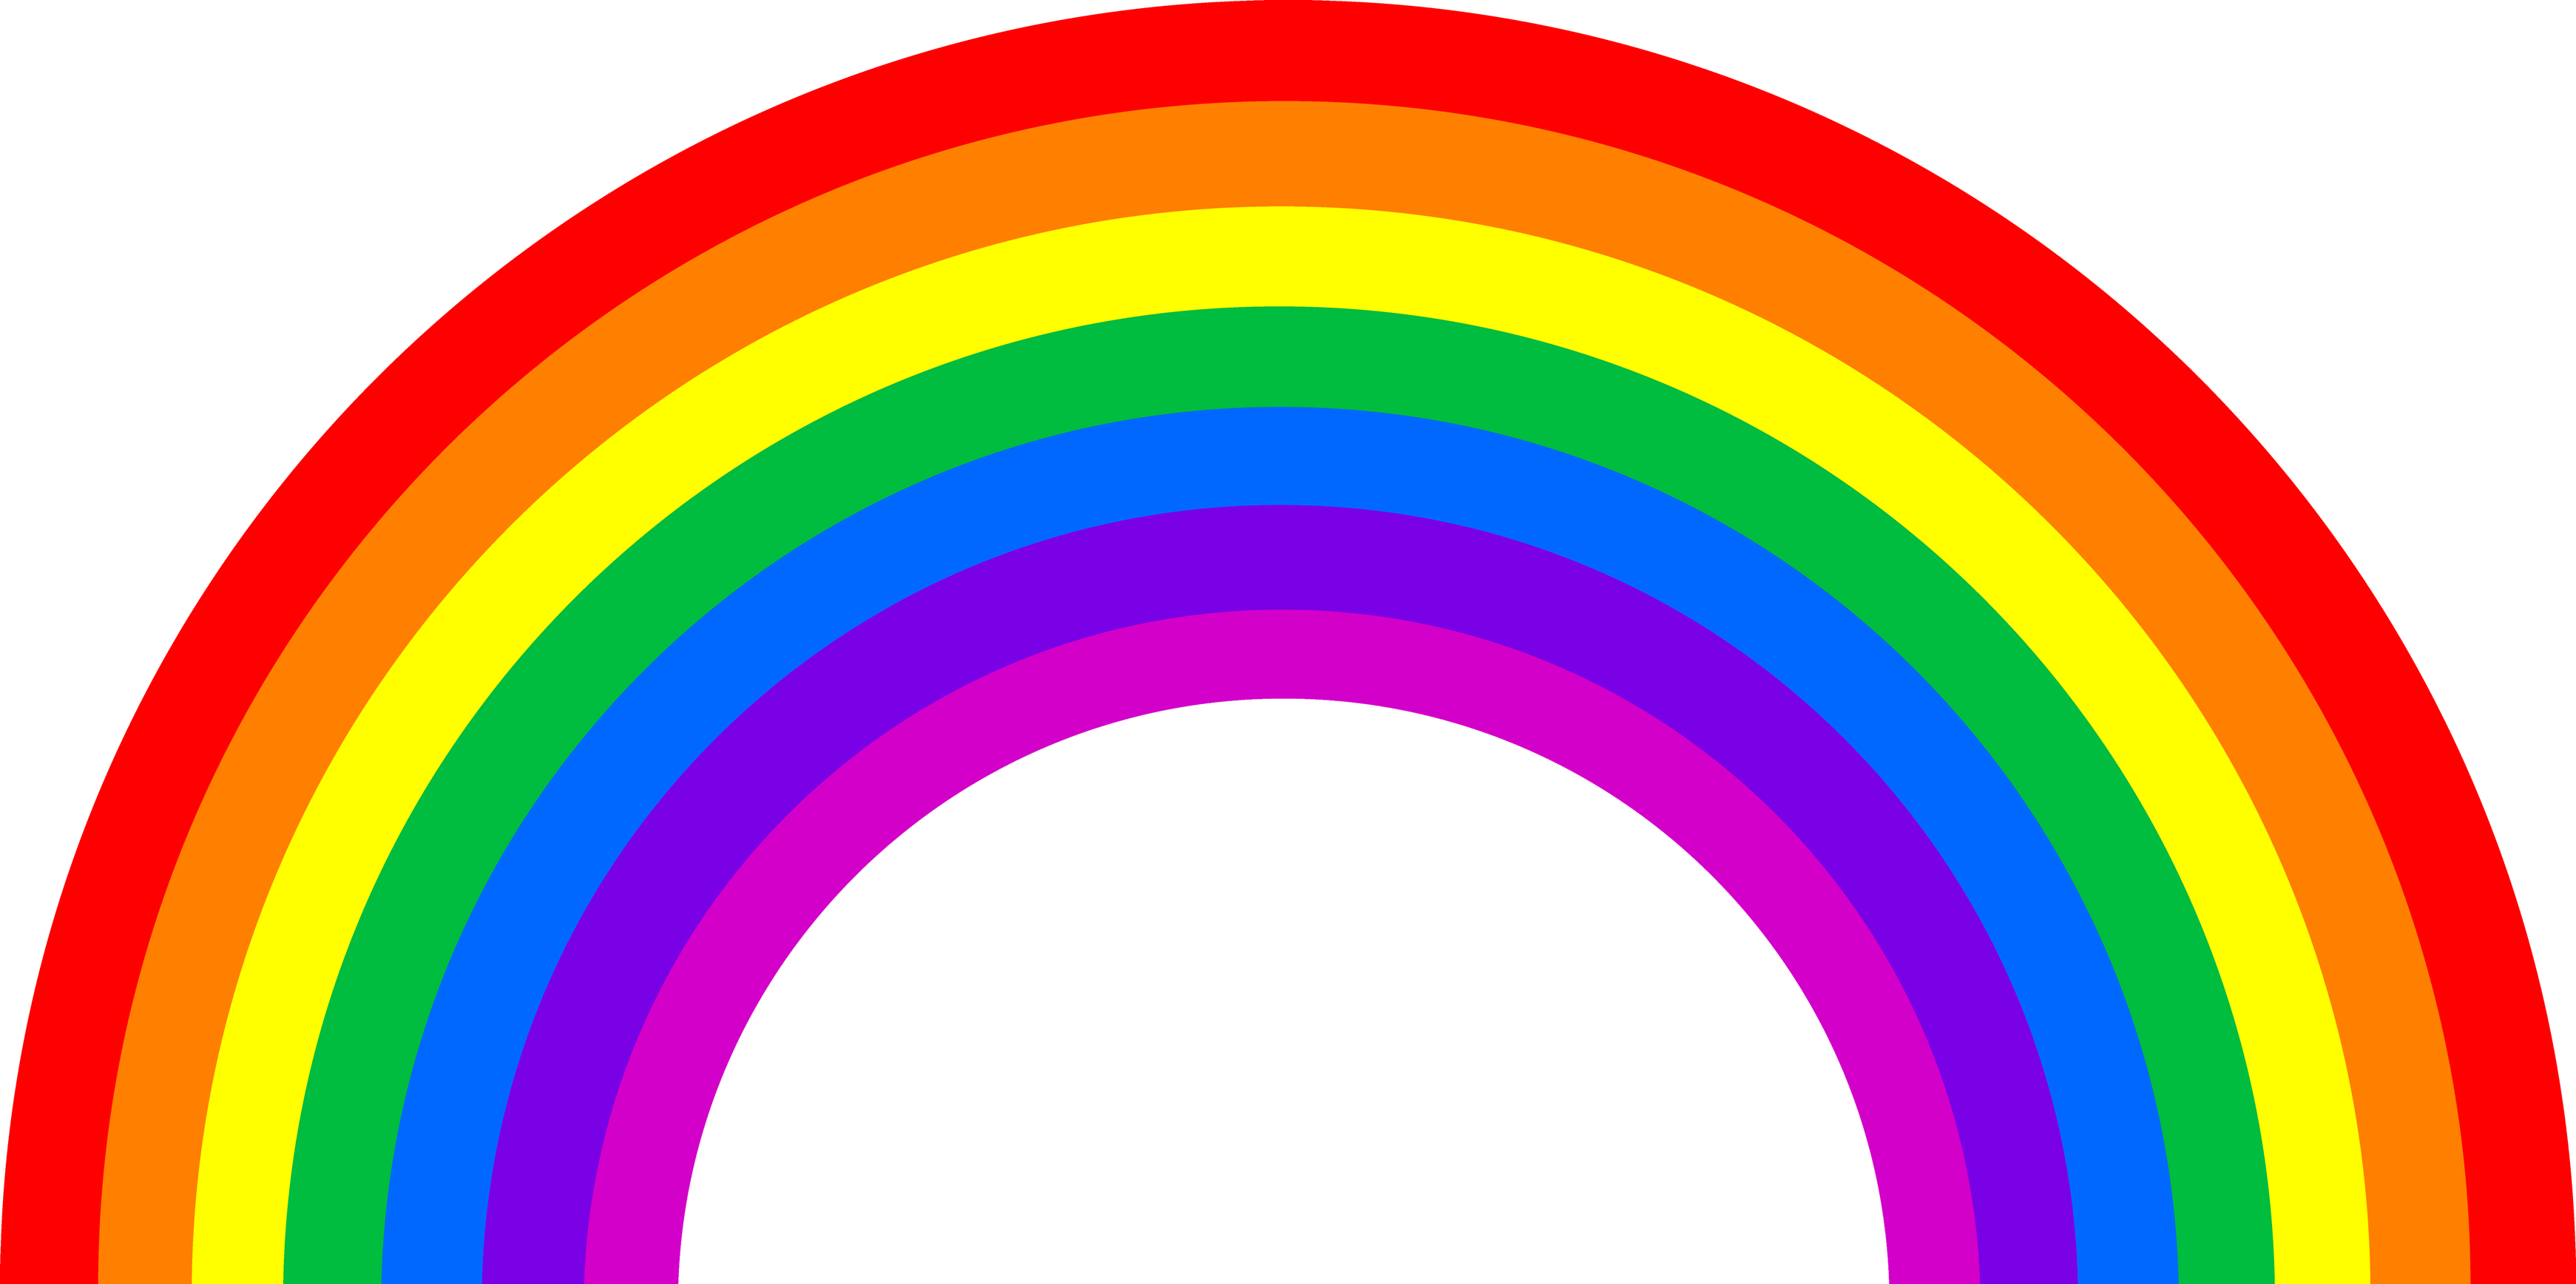 Rainbow Transparent Background   Free download on ClipArtMag